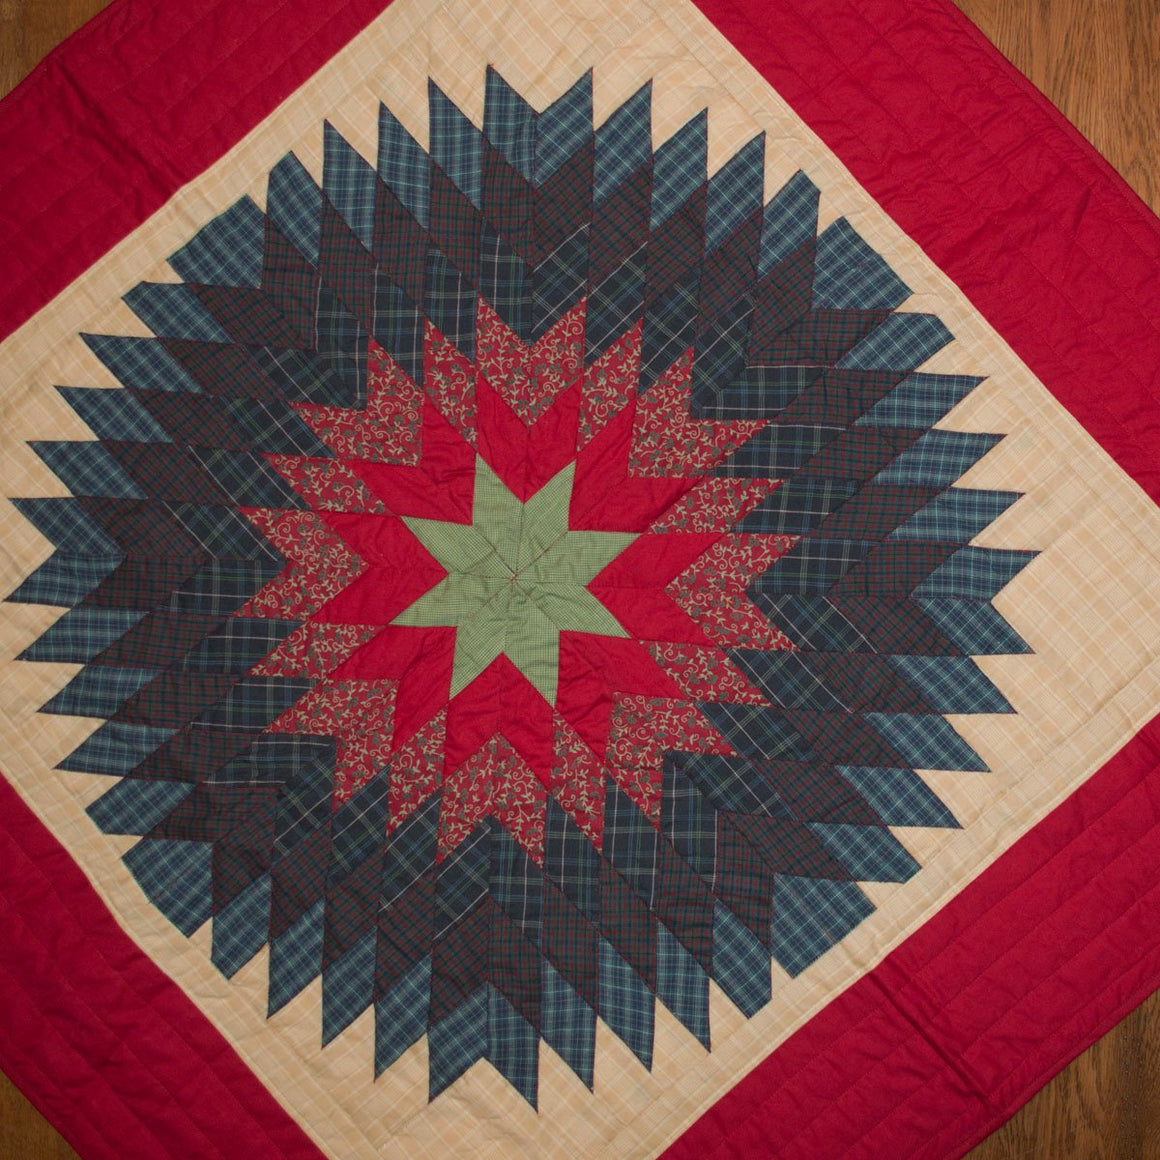 Treasured Star Mini Quilt - Table Topper / Wall Hanging